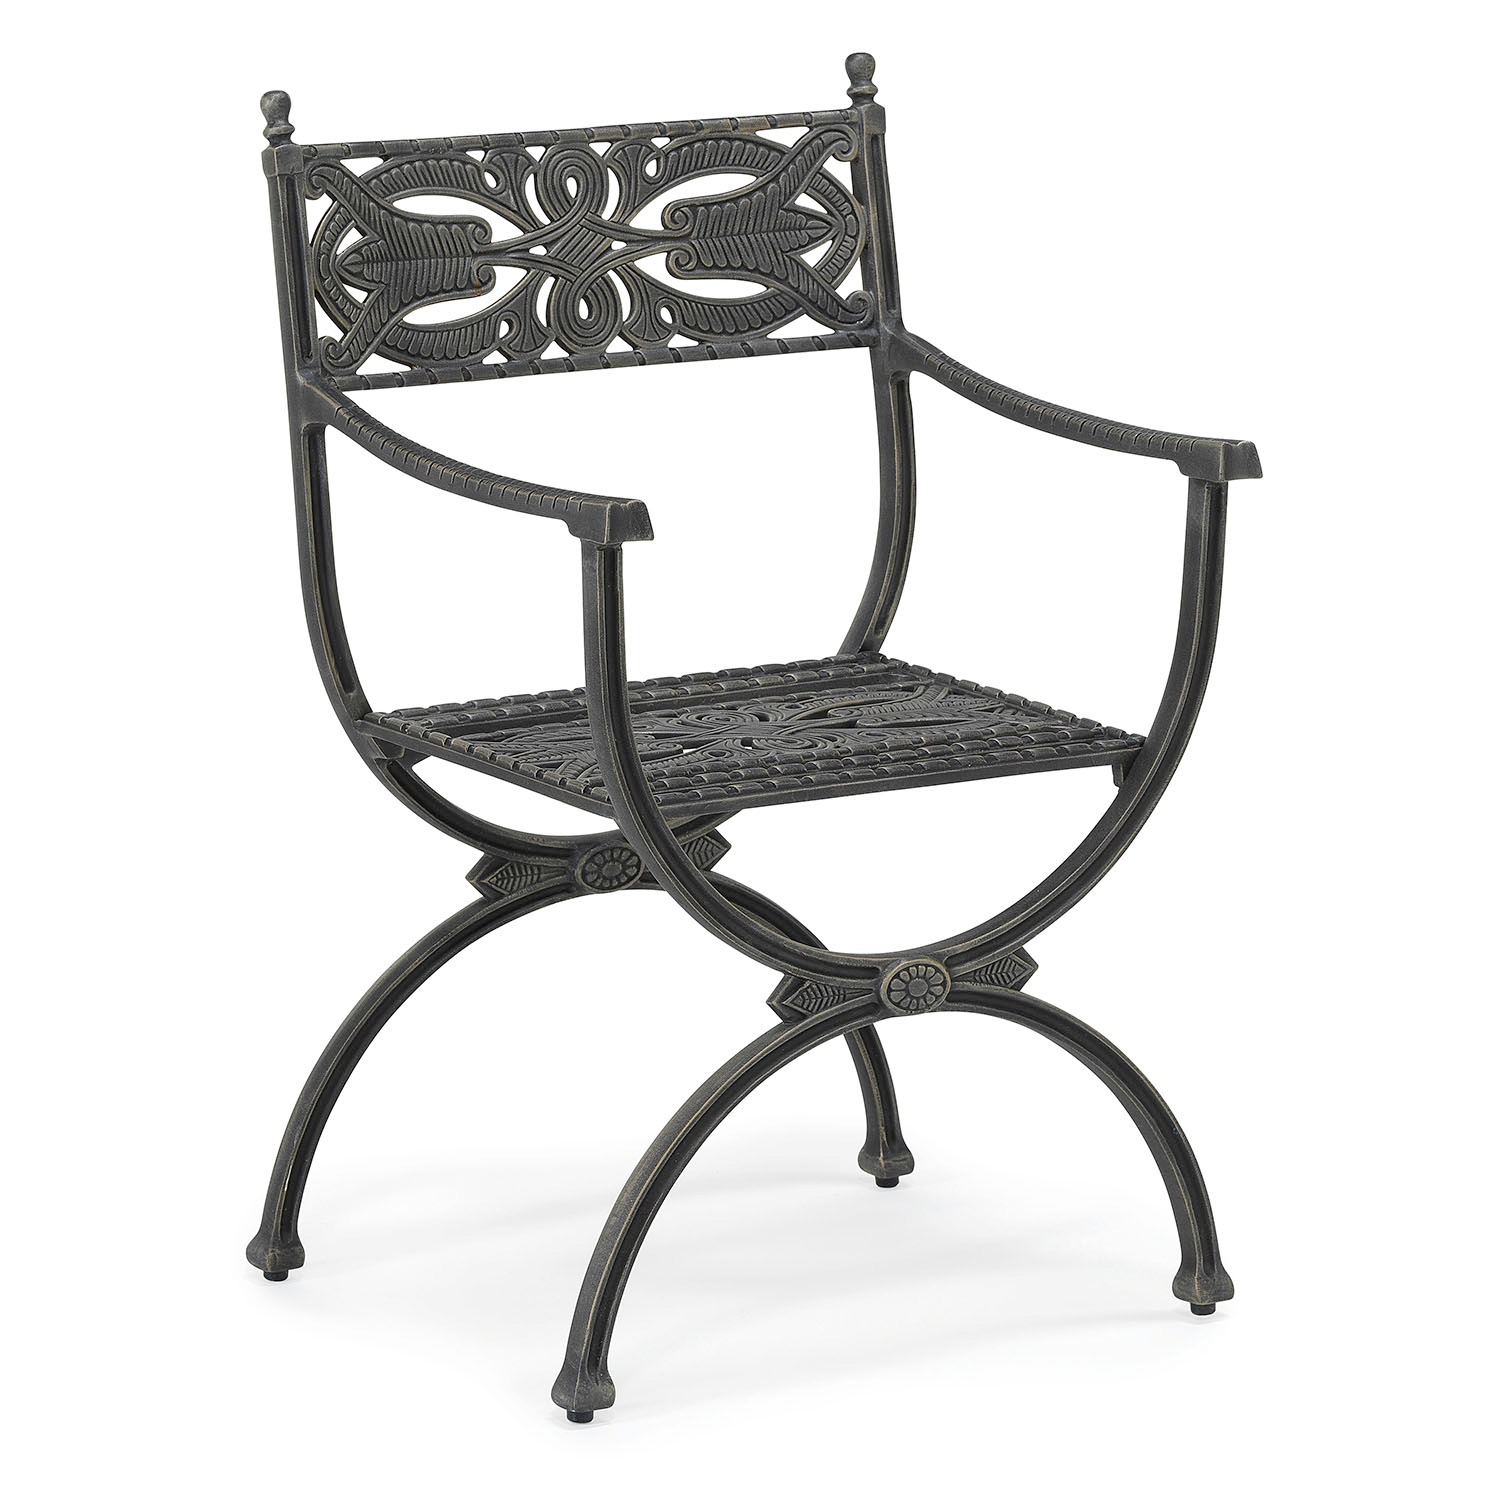 Reptonian metal Outdoor dining arm chair with standard fabric seat cushion